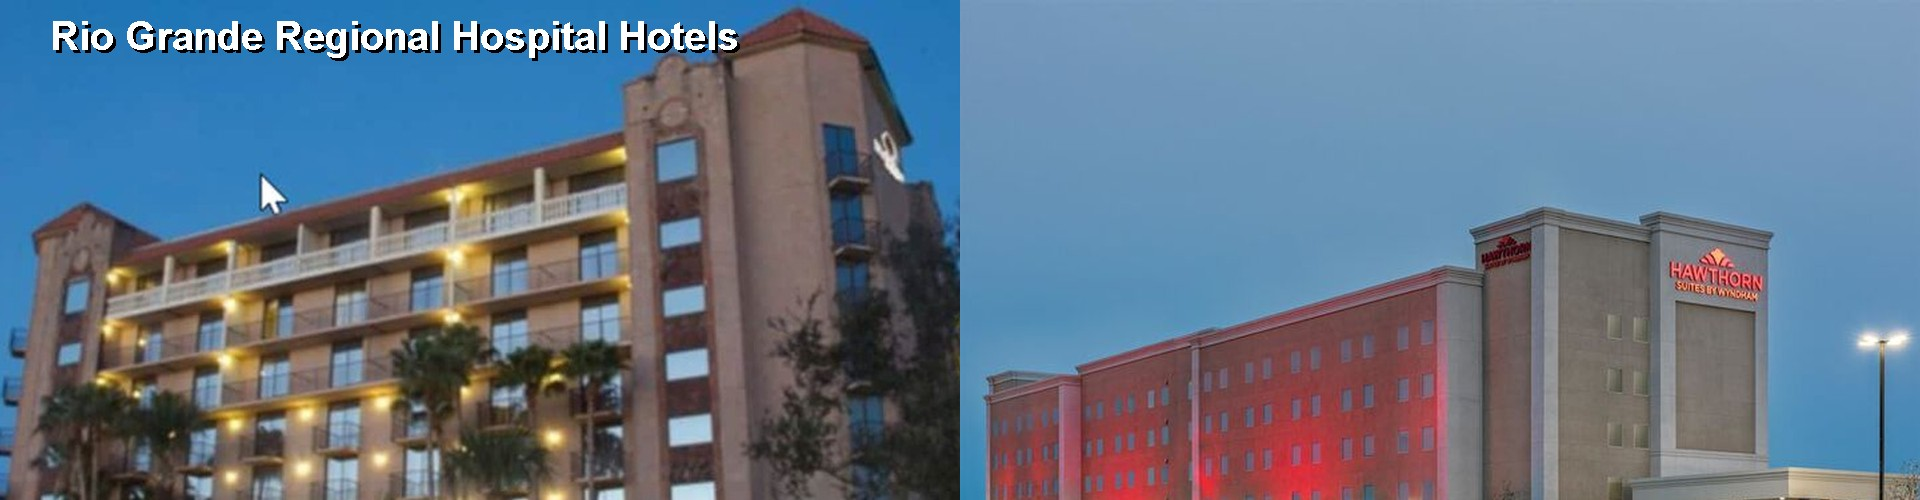 5 Best Hotels near Rio Grande Regional Hospital